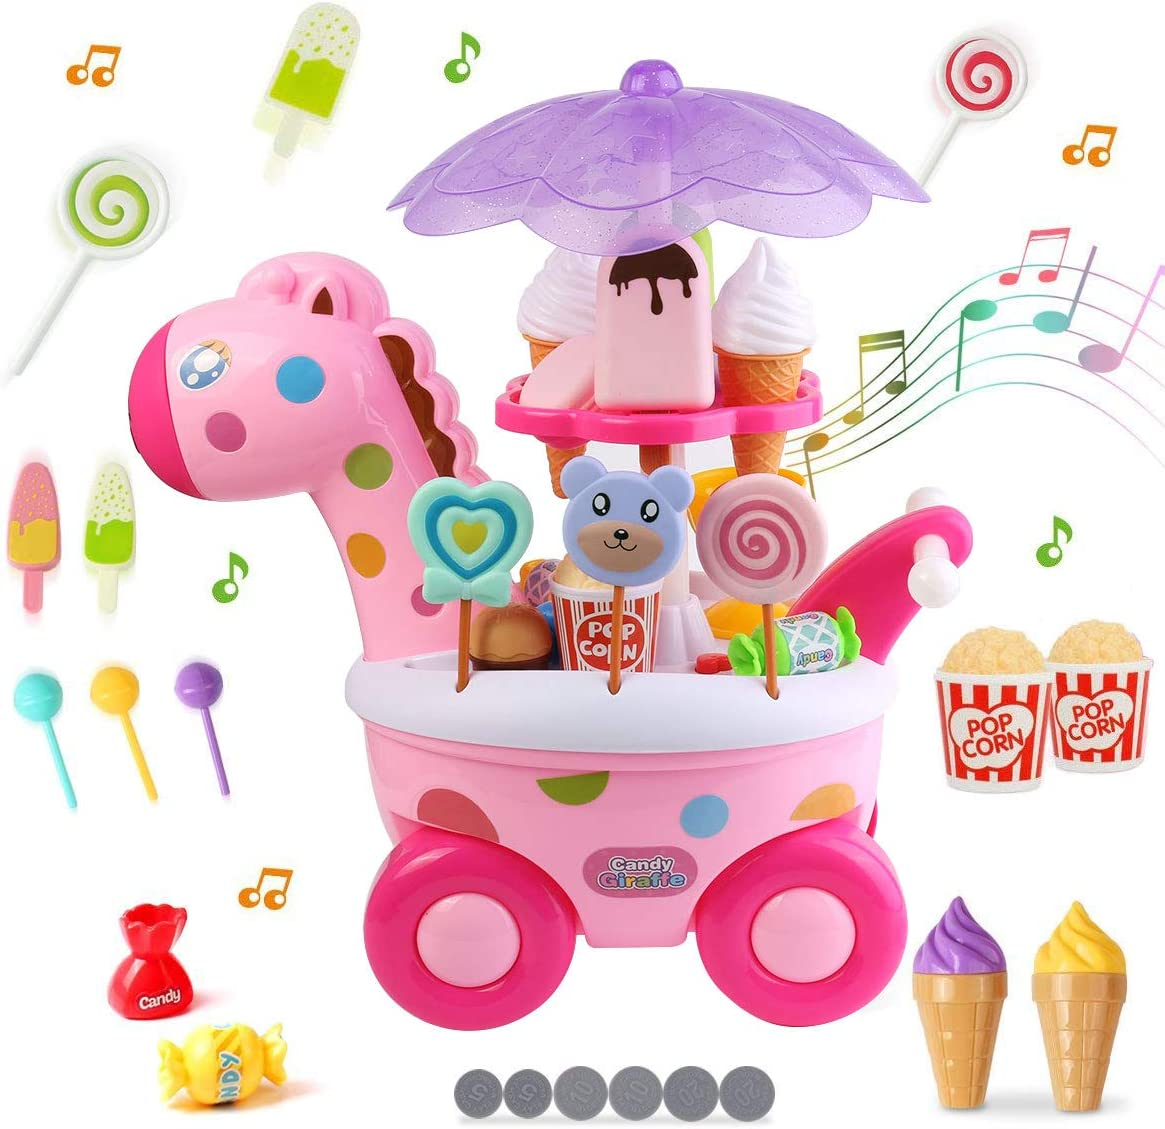 Roxie Pushable Candy Cart Ice Cream Toy Cart Play Set for Kids Pretend Play Food Educational Ice Cream Trolley Truck Great Gift for Little Girls and Boys